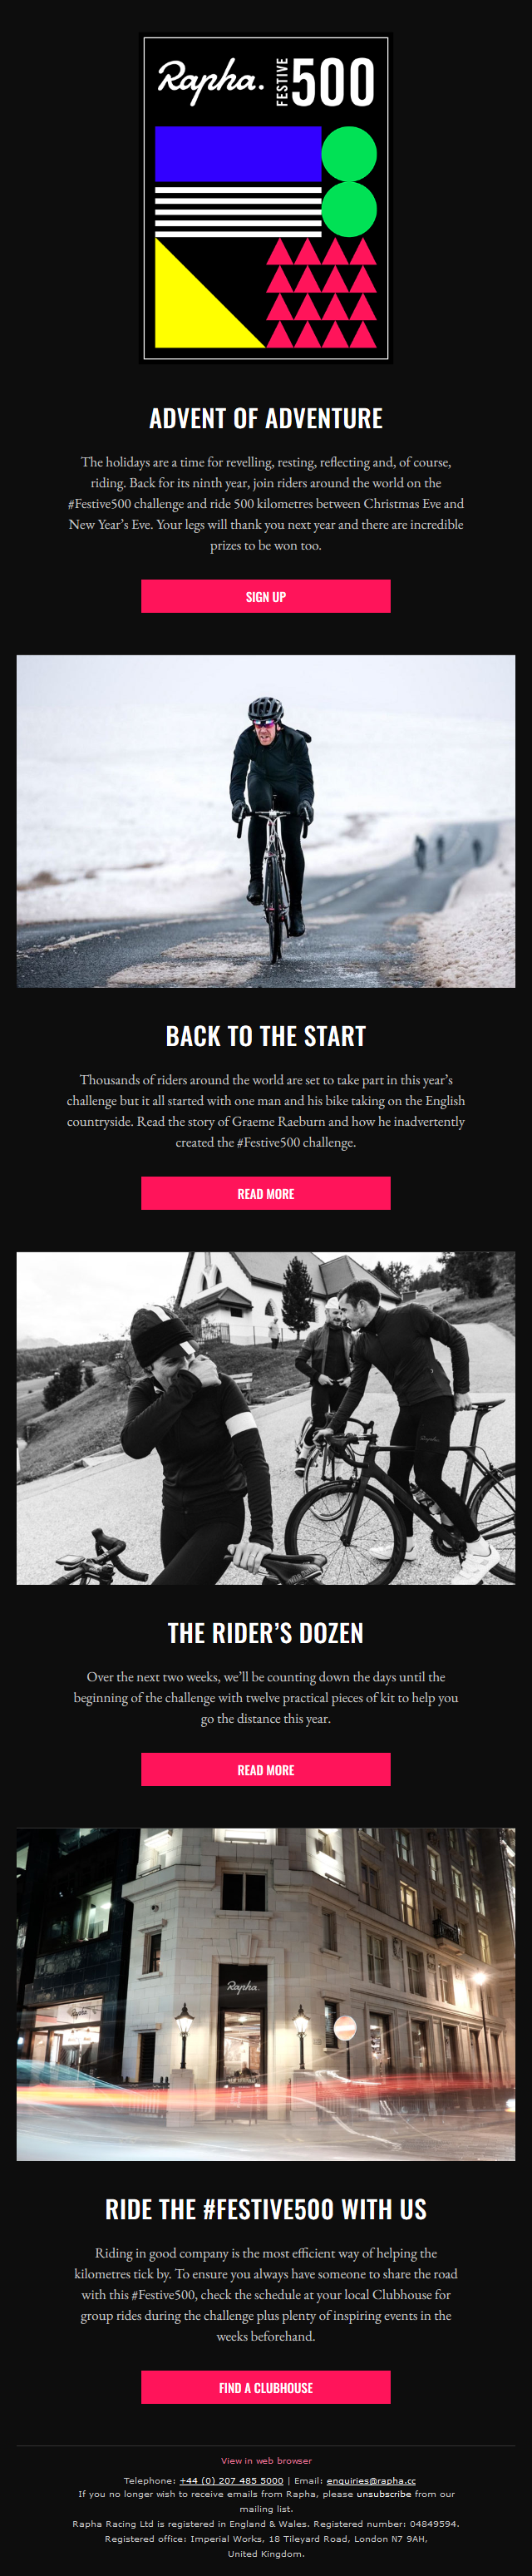 Wrap up, ride out. The #Festive500 is back